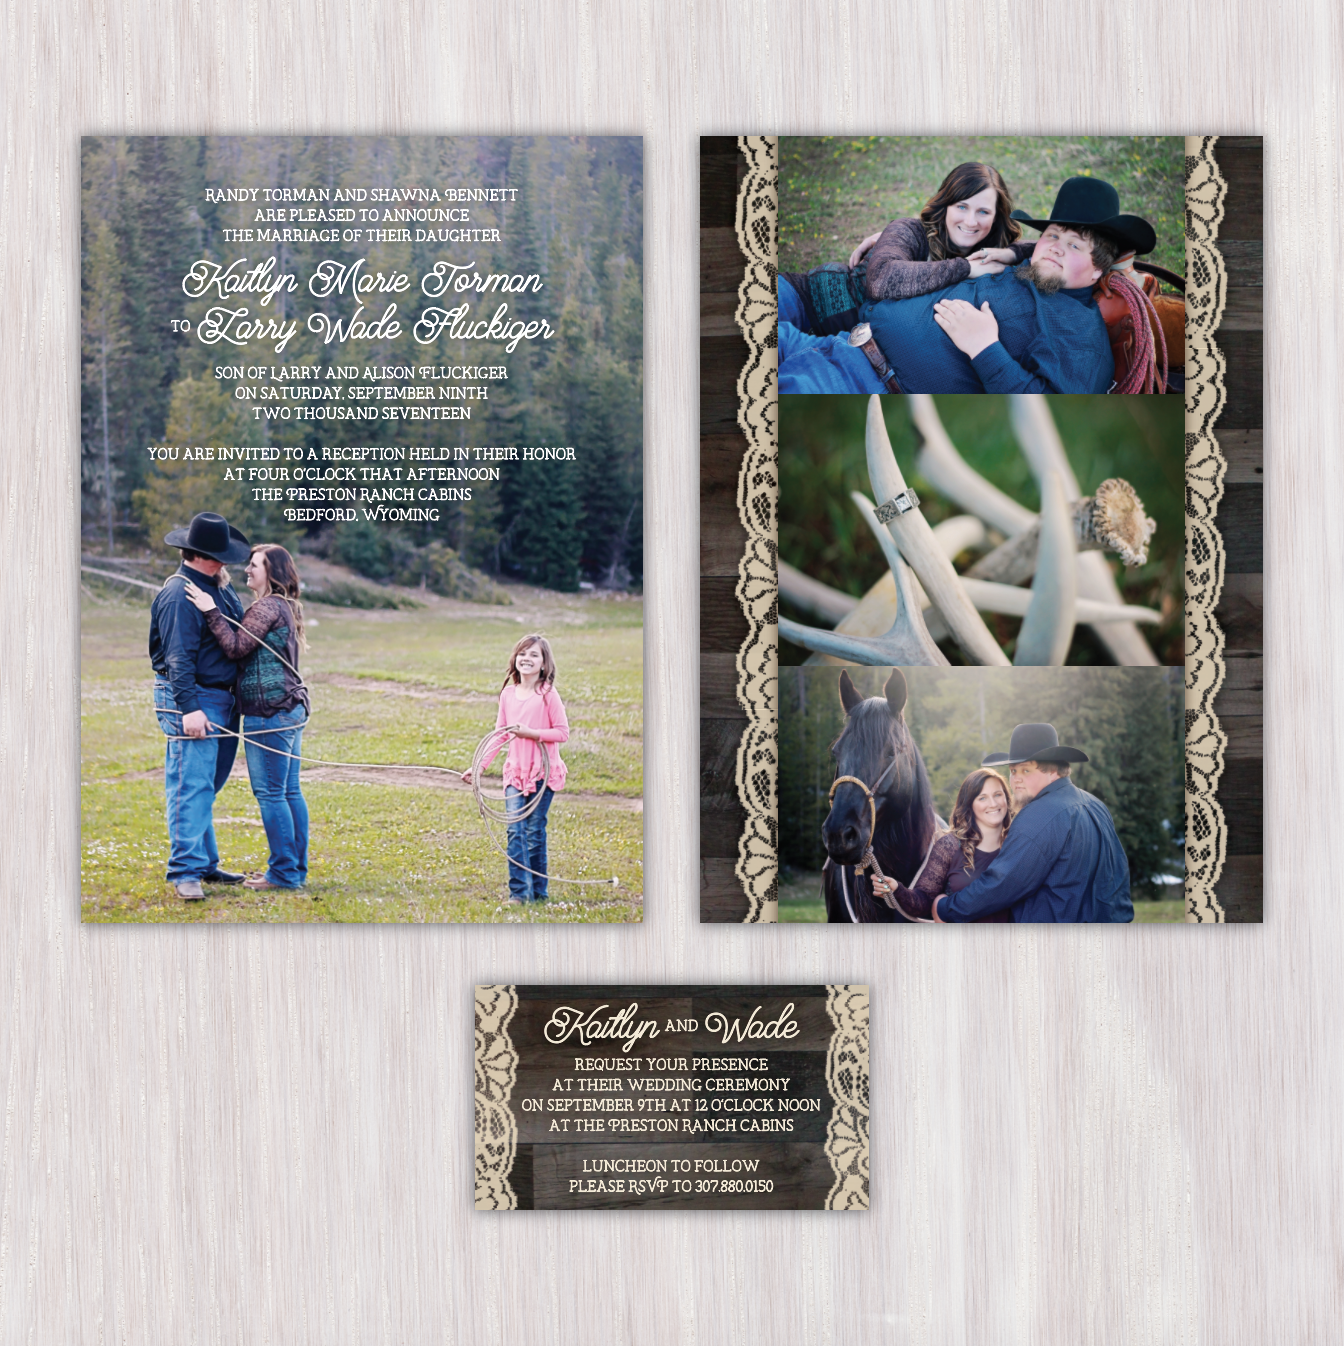 Wyoming Rustic Photo Background Invitation With Barn Wood And Lace Collage Back Matching Ceremony